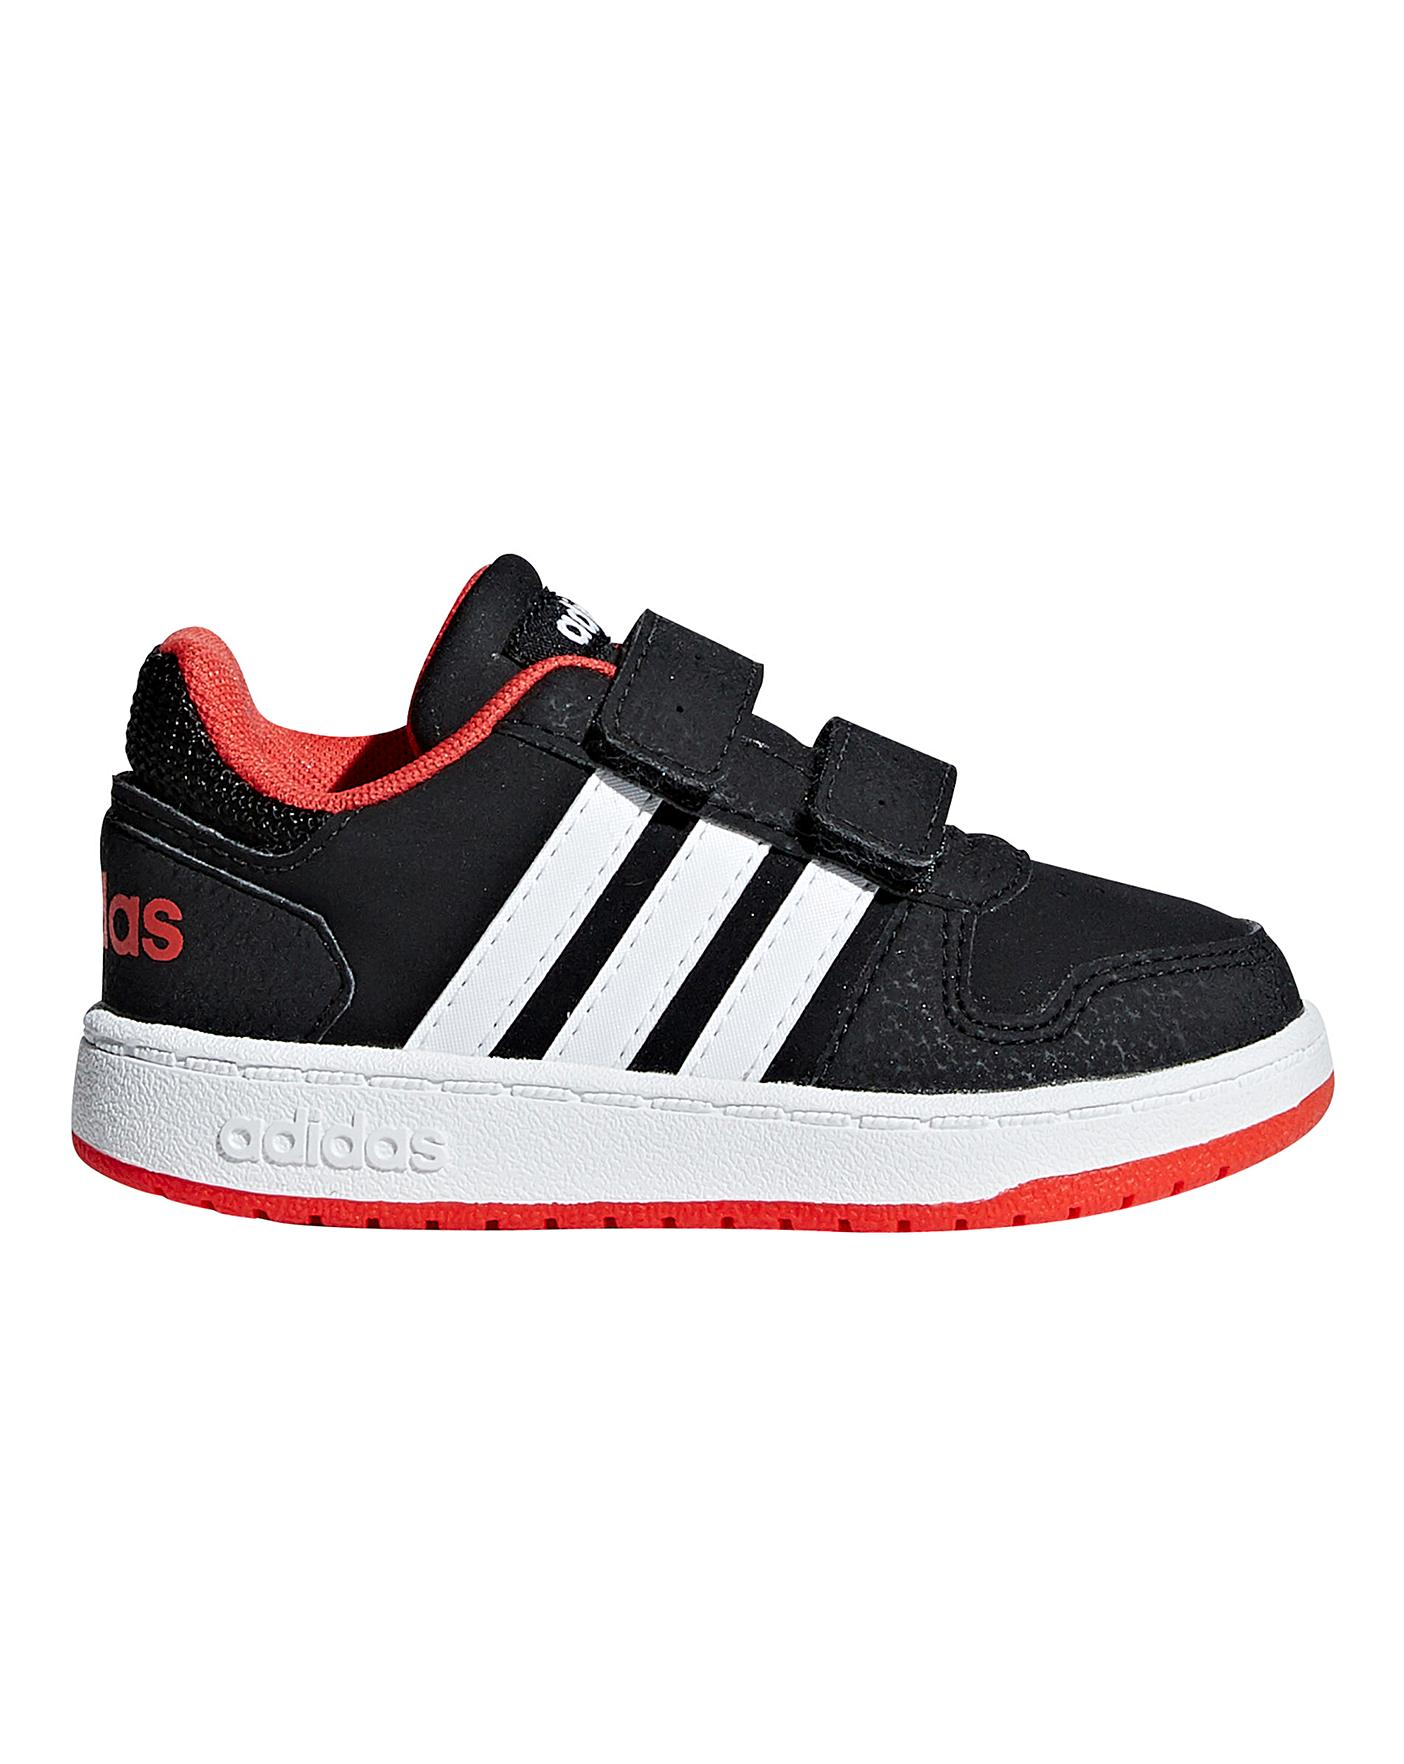 adidas Hoops 2.0 CMF Infant Trainers